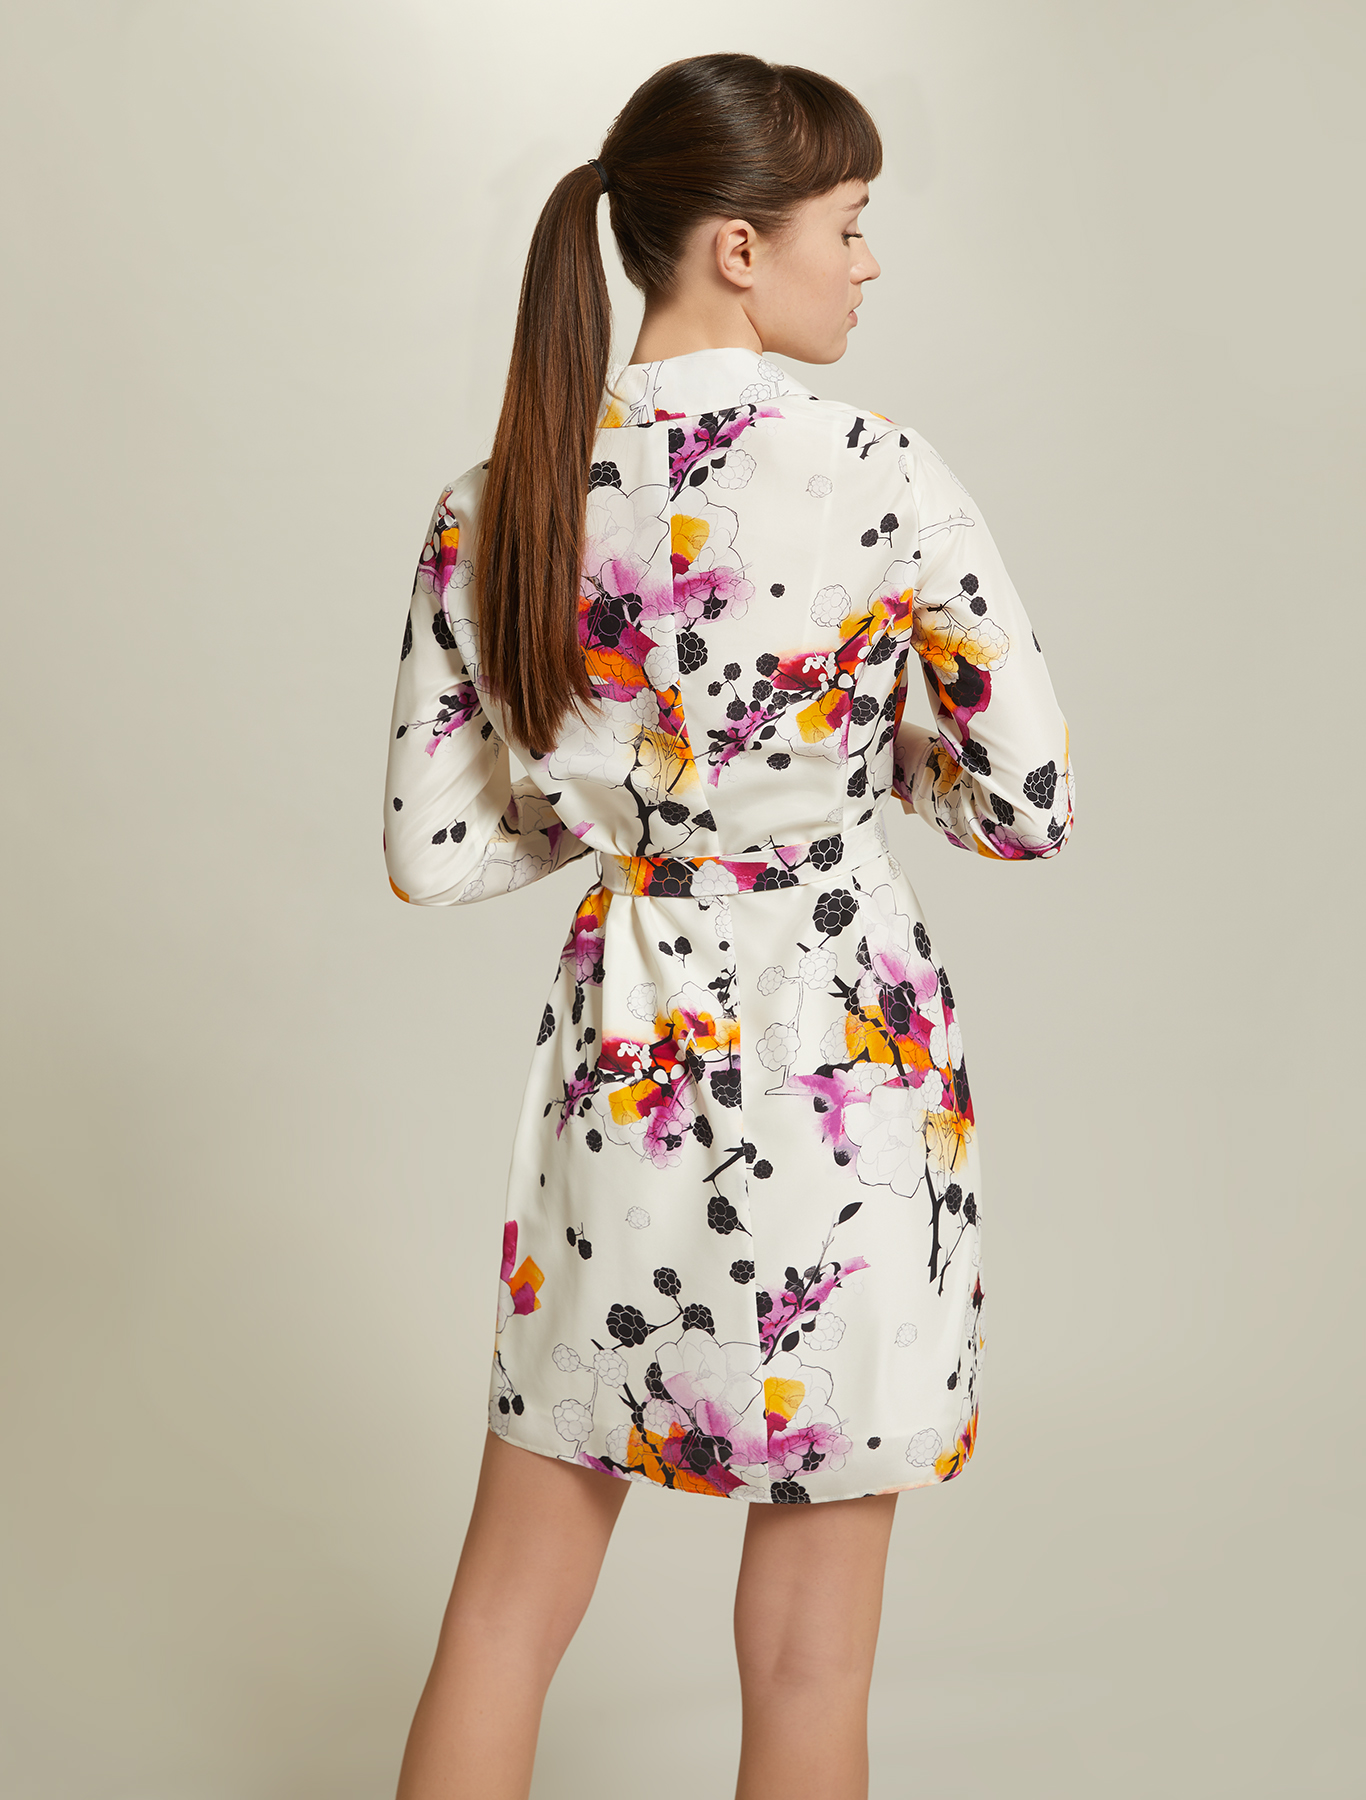 Sunset Road silk dress - white pattern - pennyblack